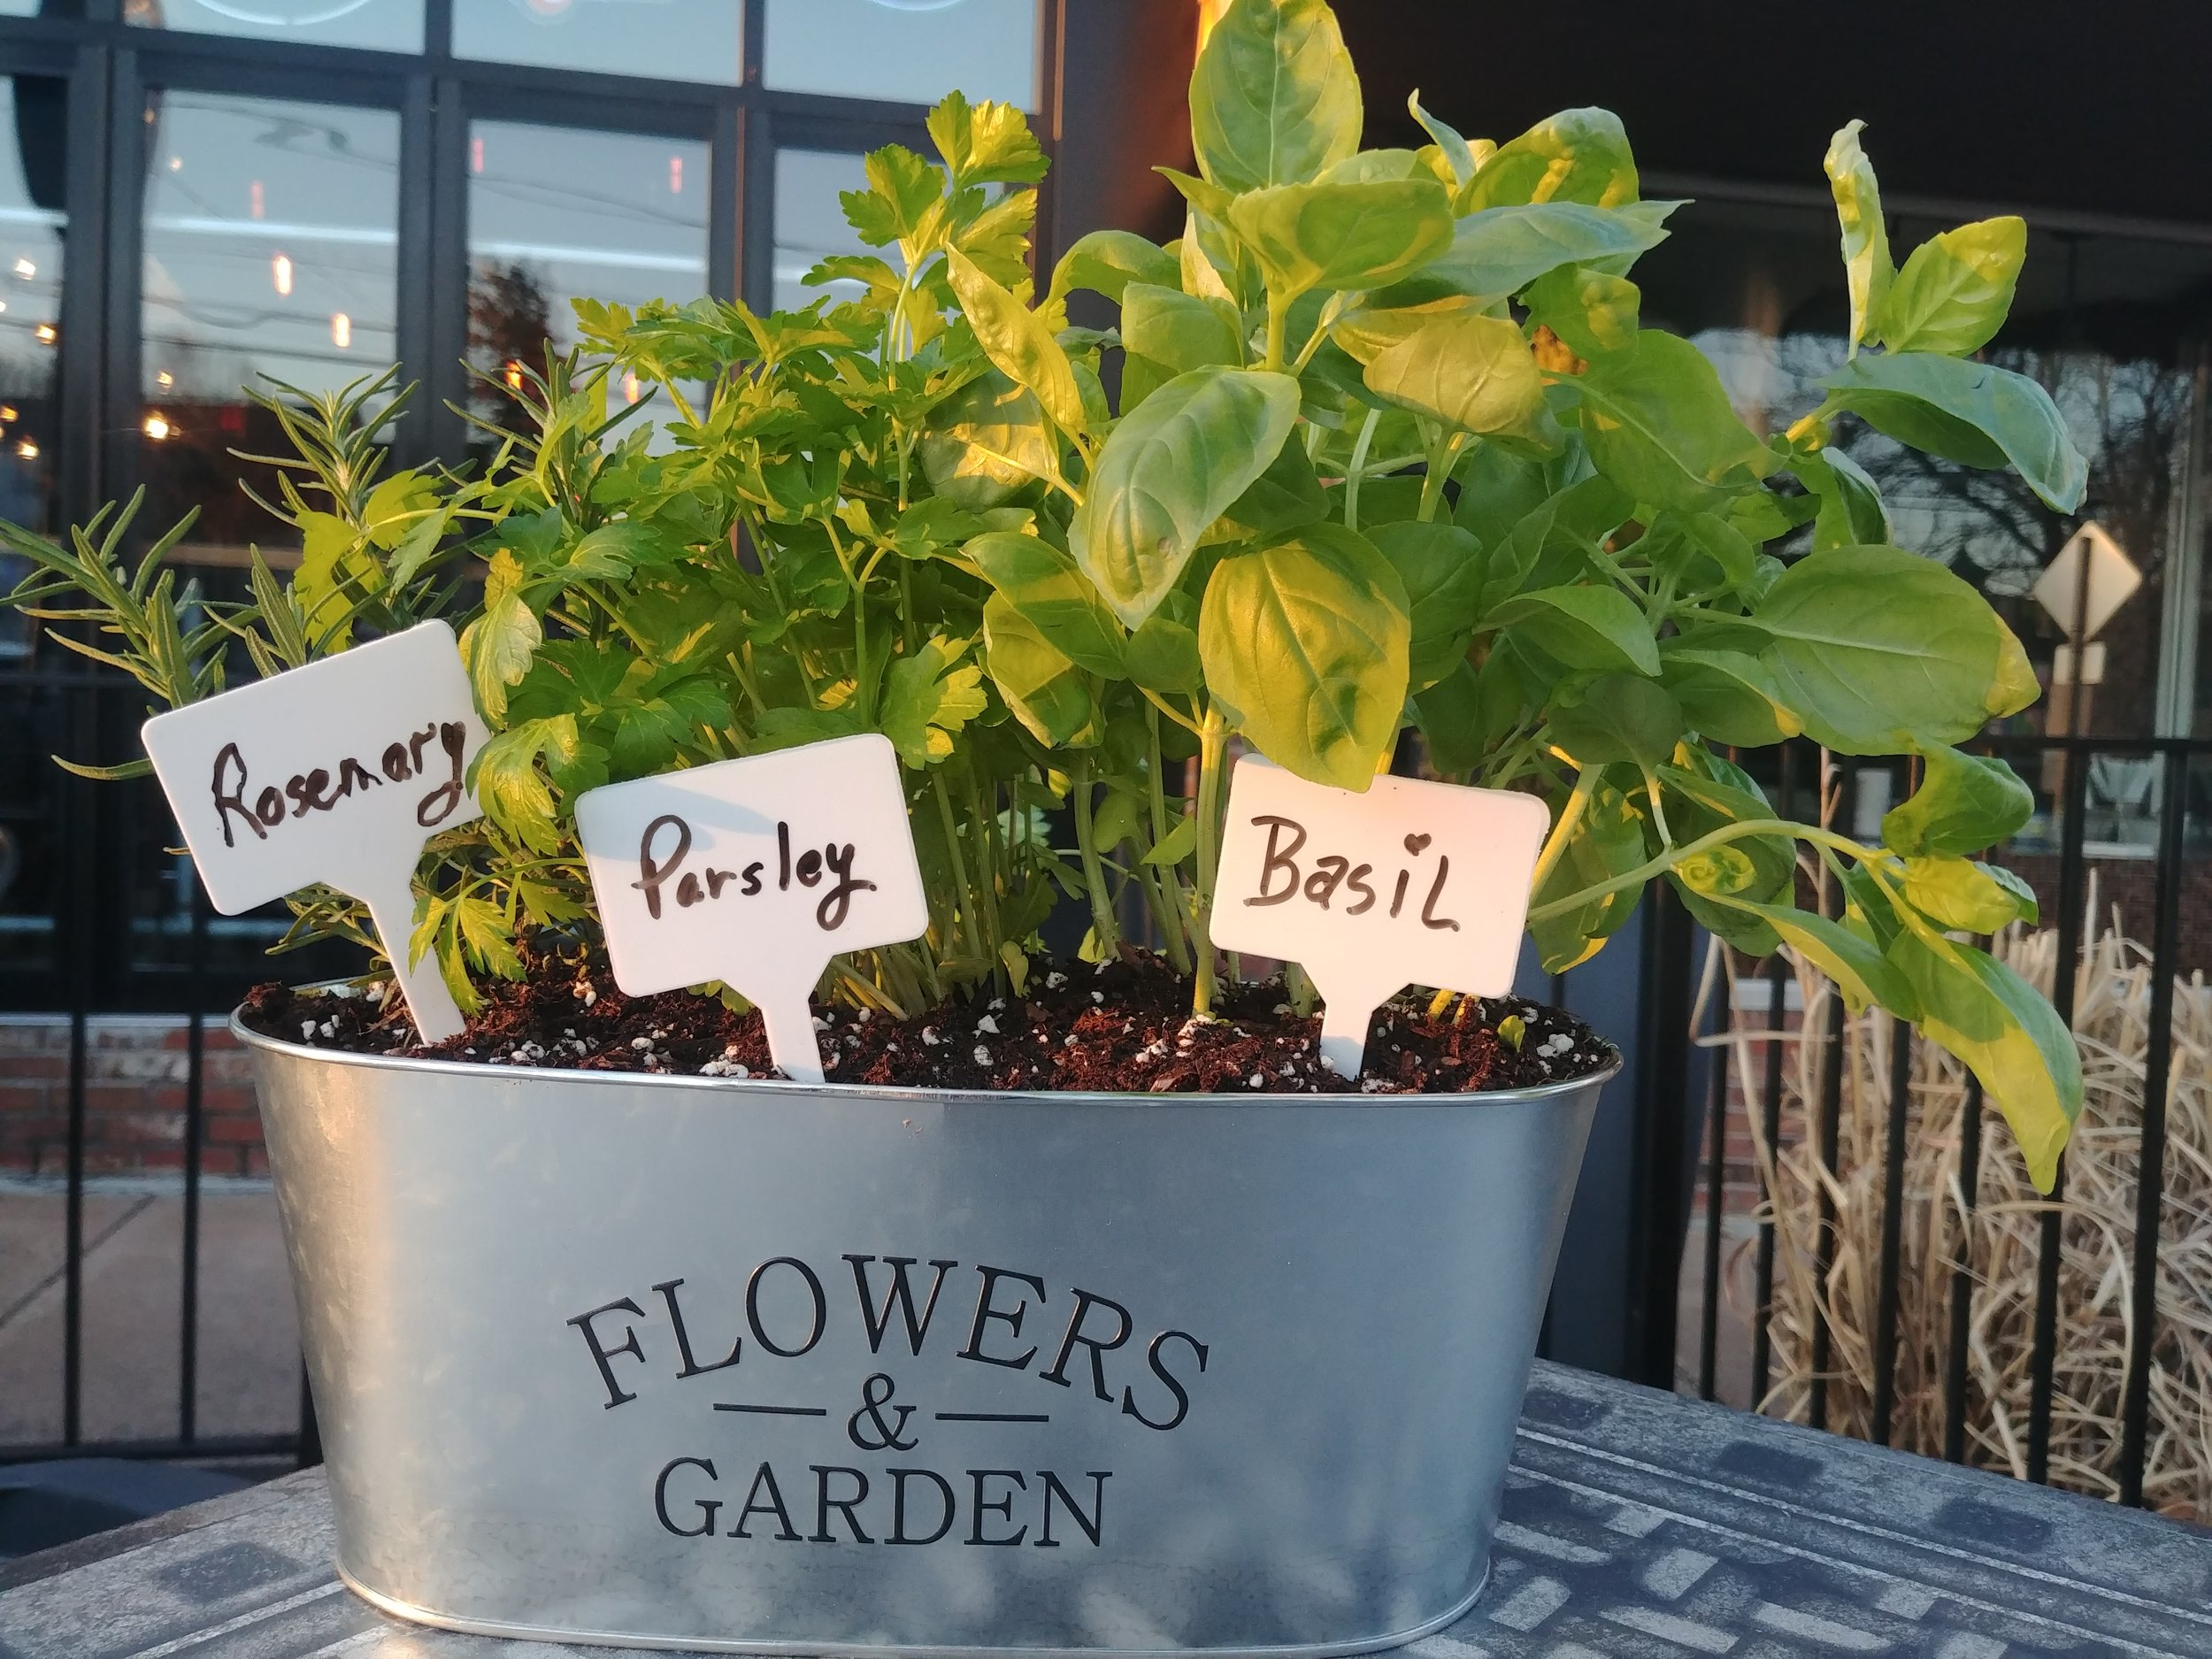 May 7th at 6pm at Plan B West Hartford. Park Road - Plant Night. Make one for the cook in your life! Just $30.